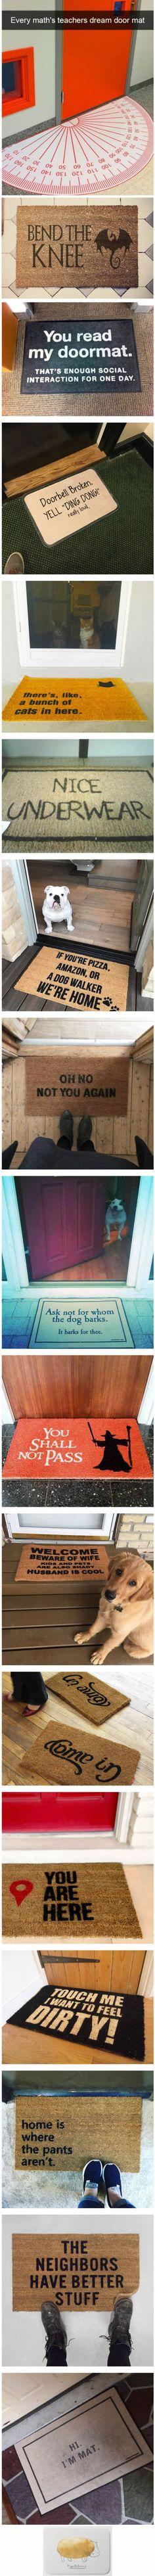 15 Awesome Doormats That Will Make You Look Twice